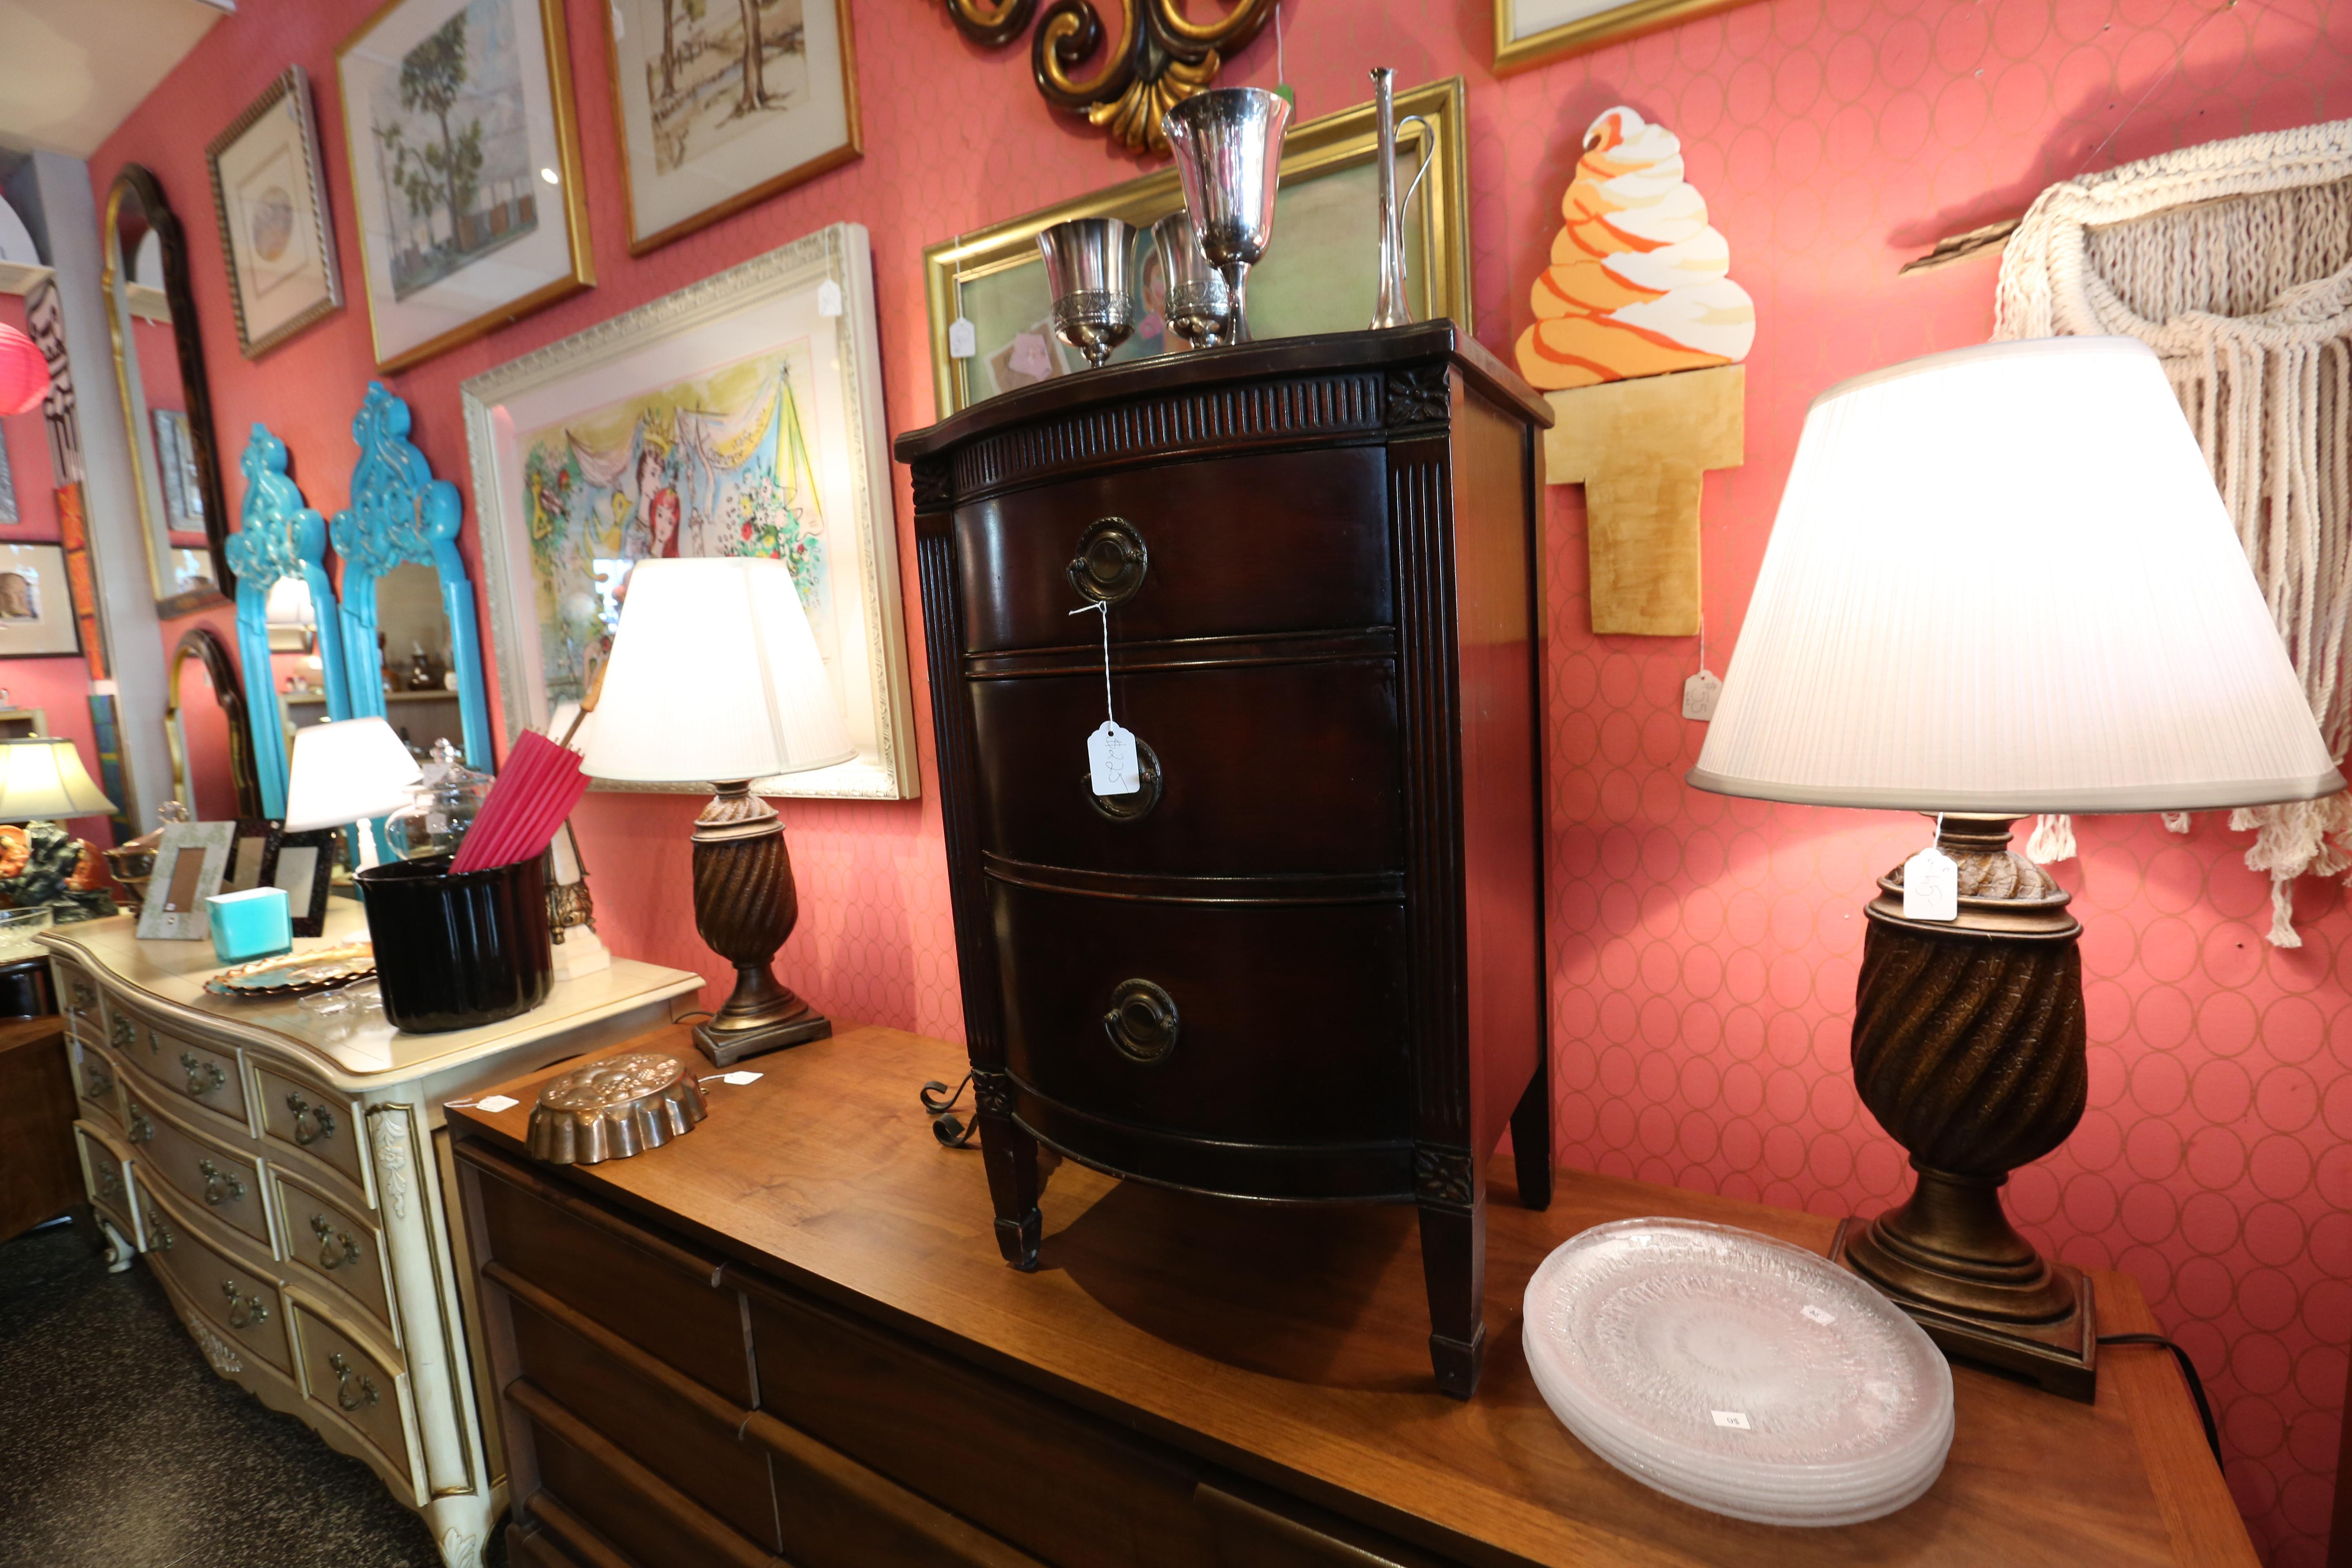 Drawers - $225, available at Miss Pixie's. (Amanda Andrade-Rhoades/DC Refined)